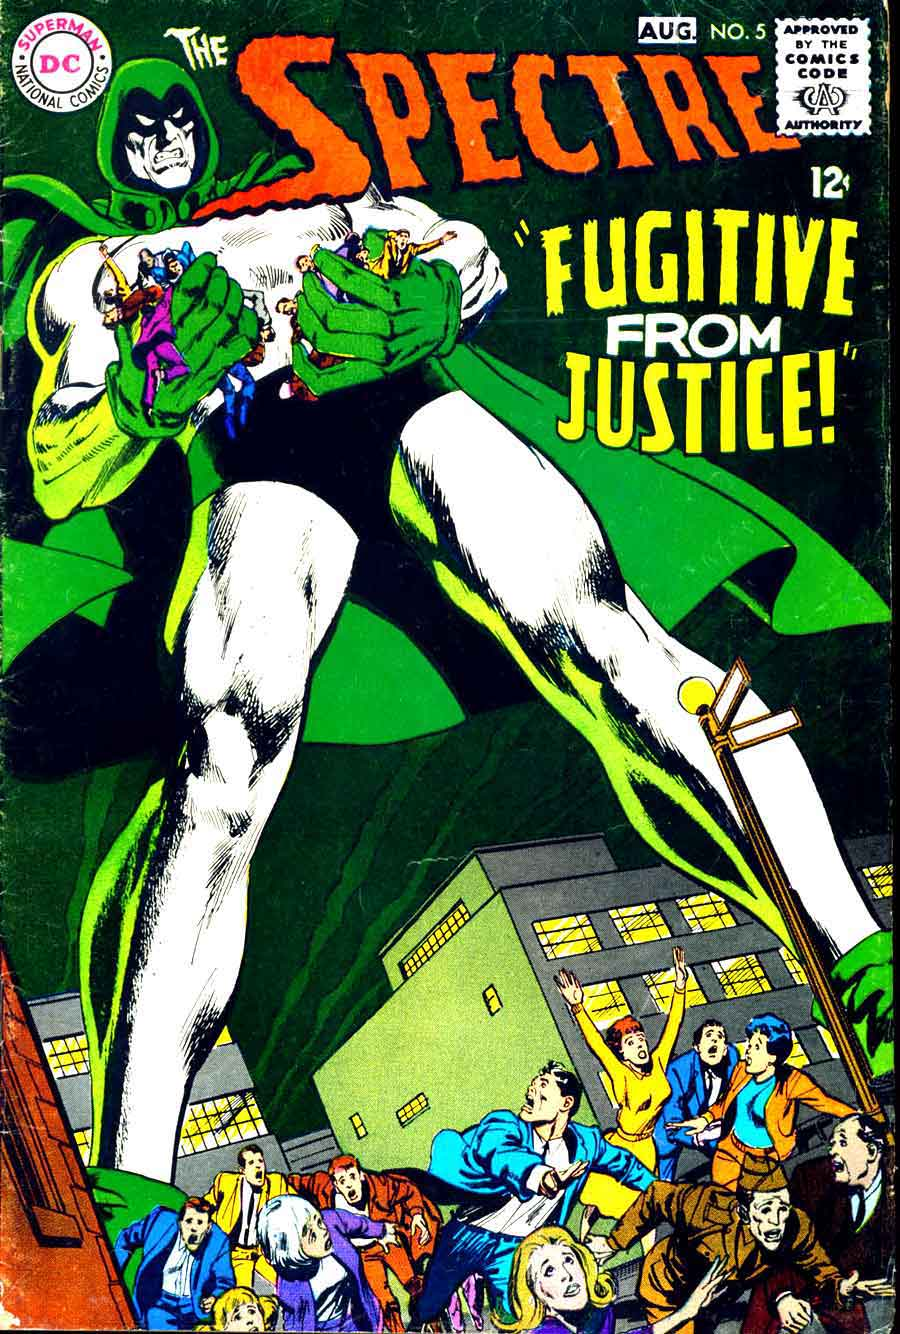 Spectre v1 #5 dc 1960s silver age comi book cover art by Neal Adams